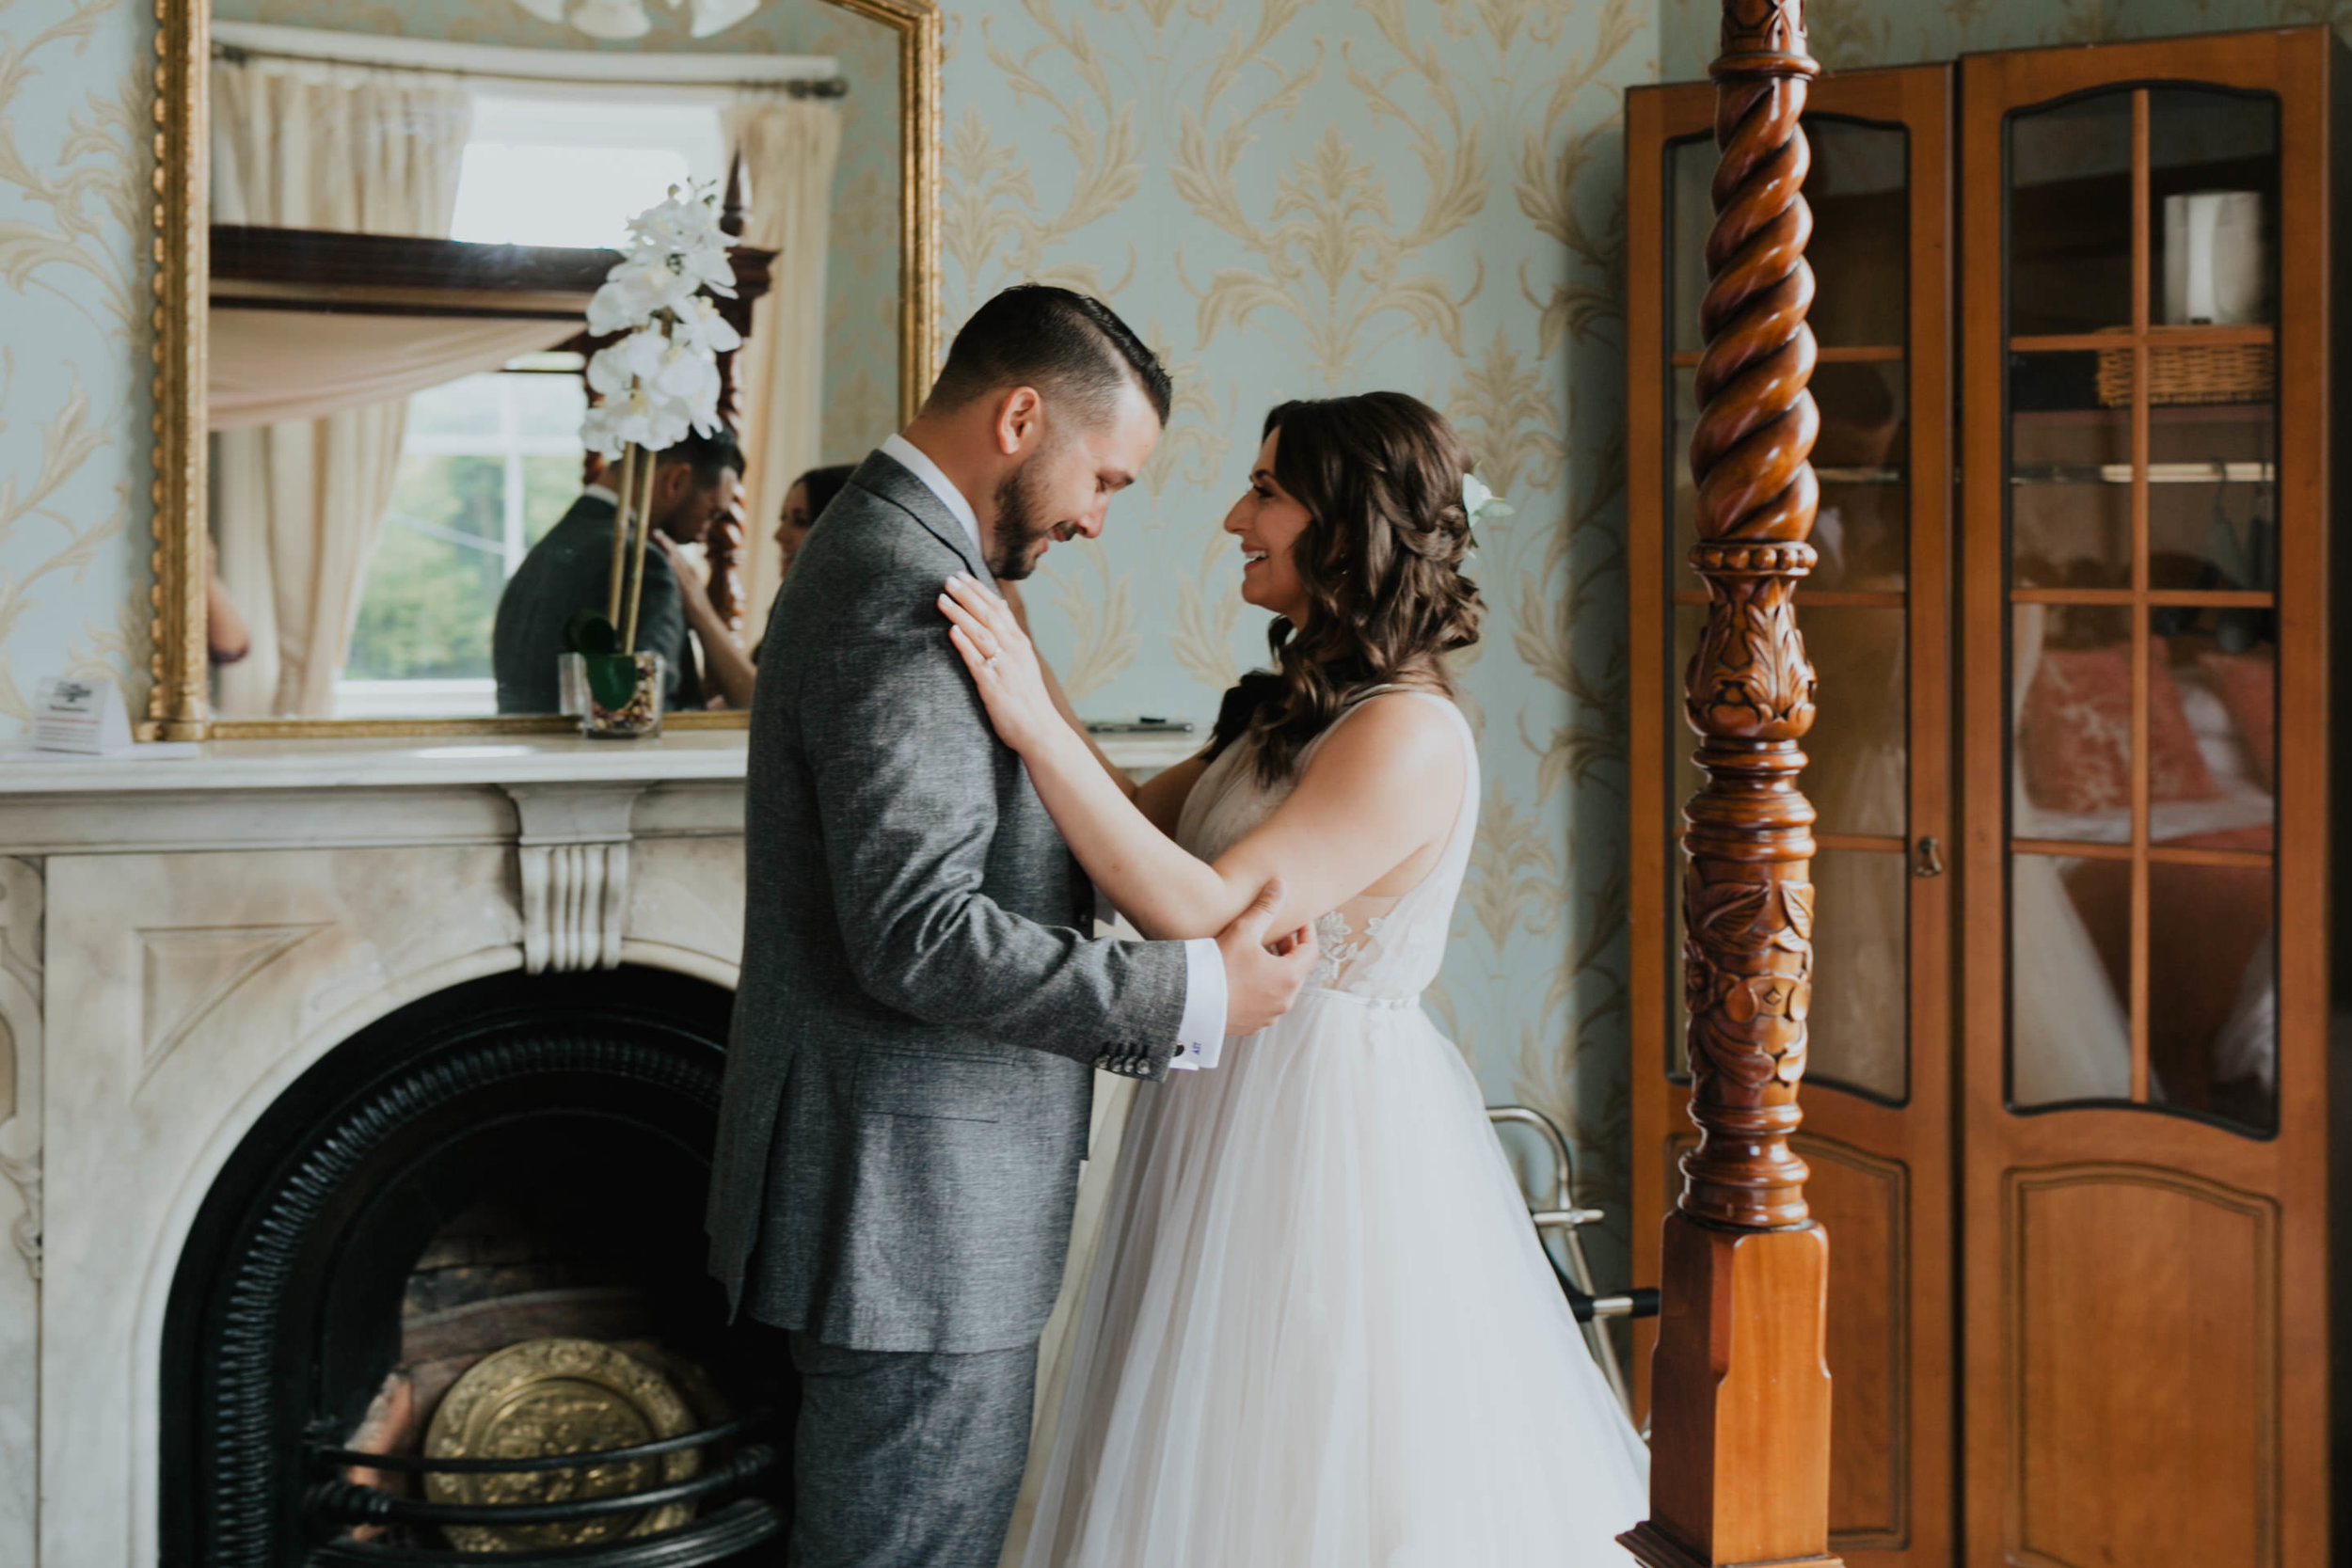 l-a-the-haven-dunmore-east-wedding-photographer-livia-figueiredo-08.jpg